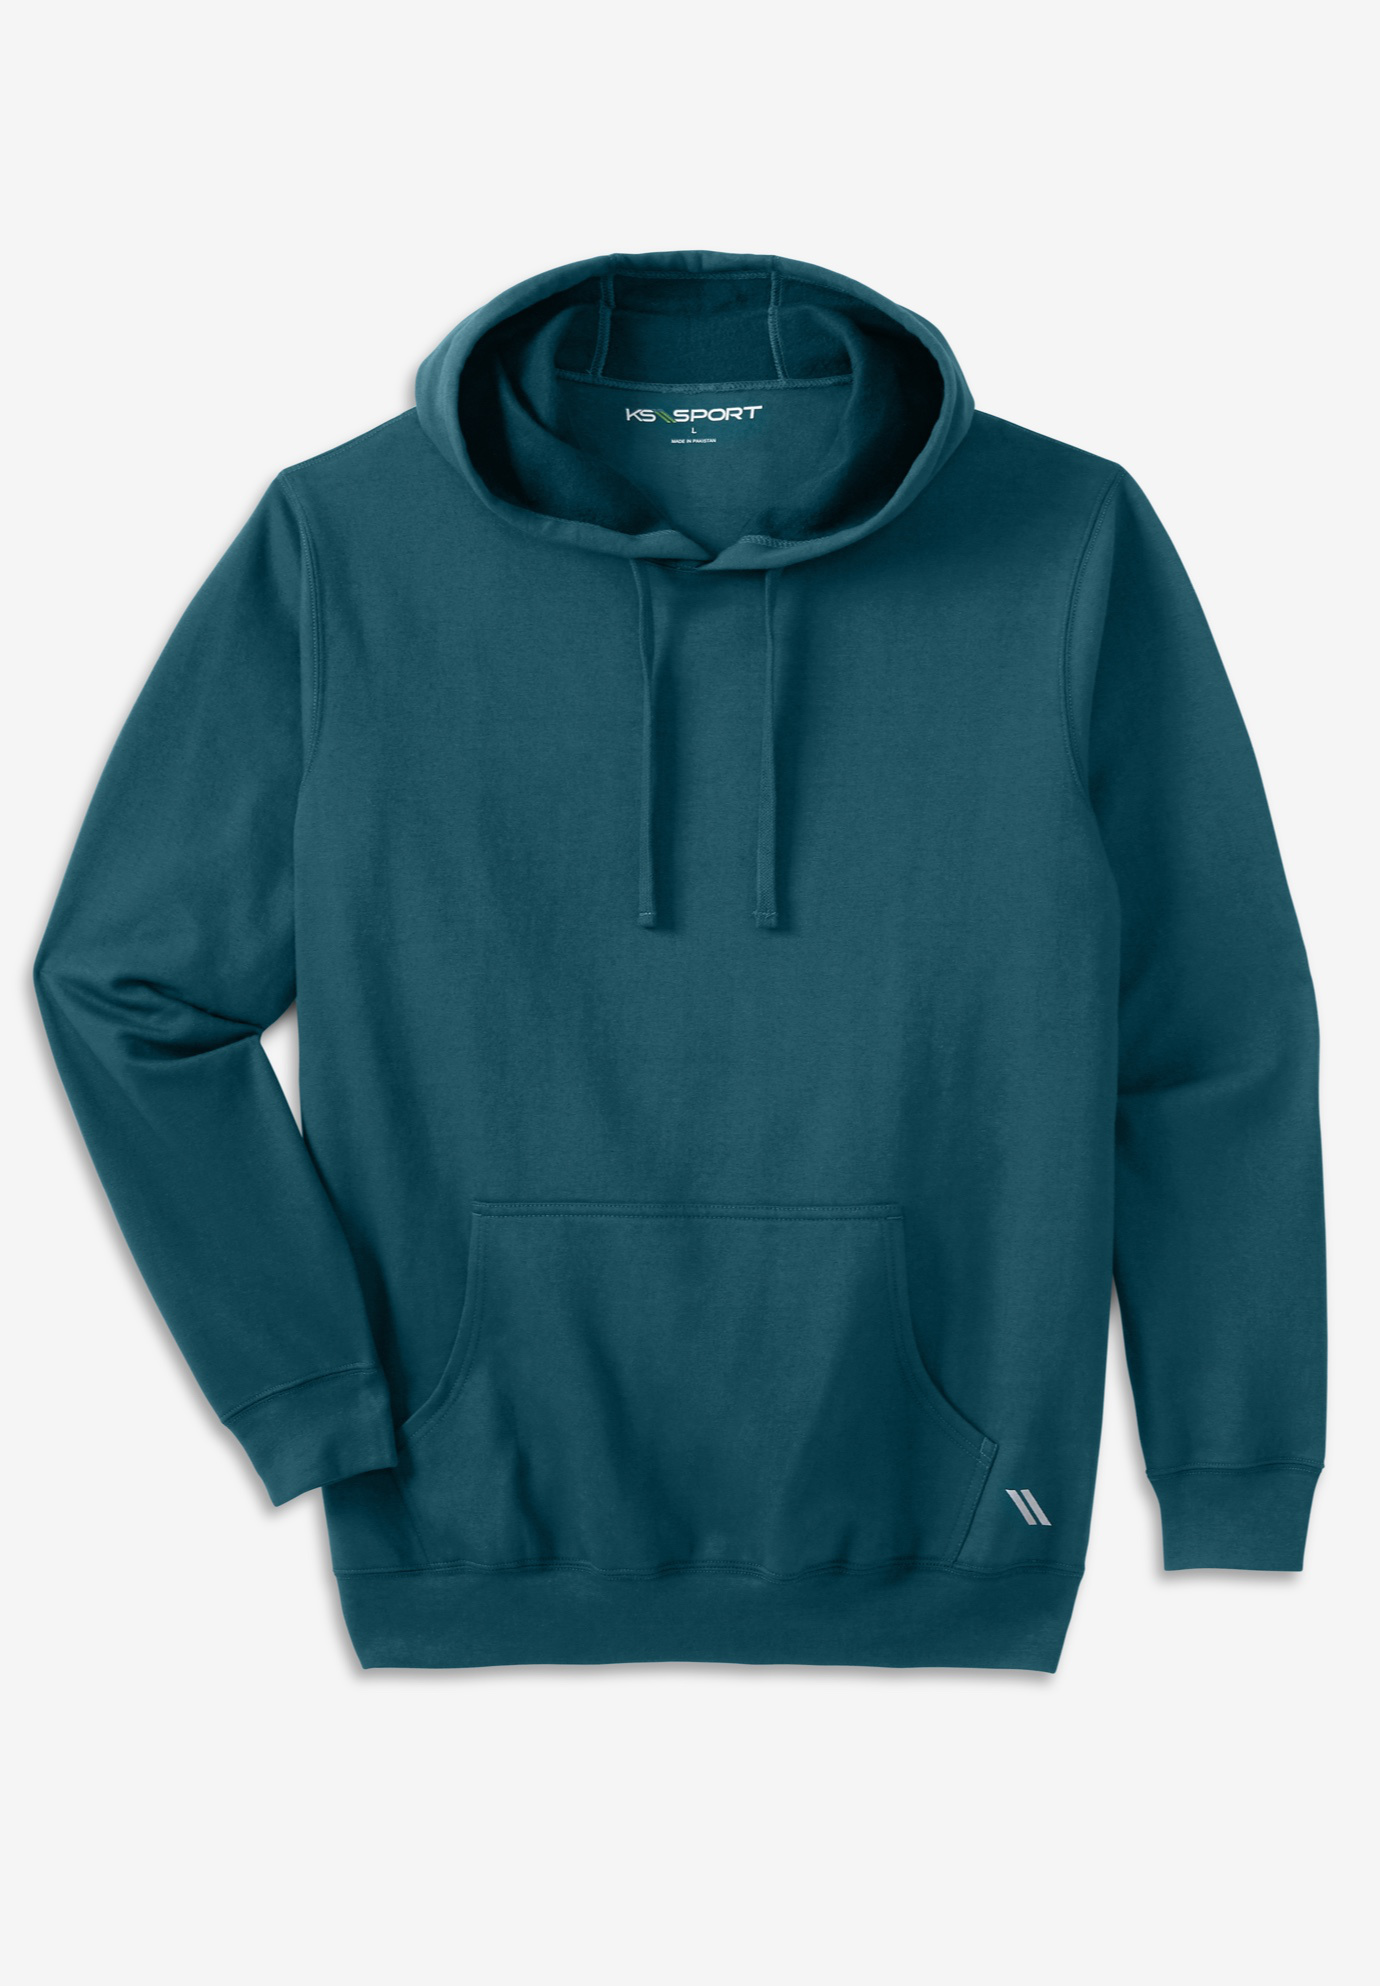 KS SPORT™ WICKING FLEECE HOODIE,